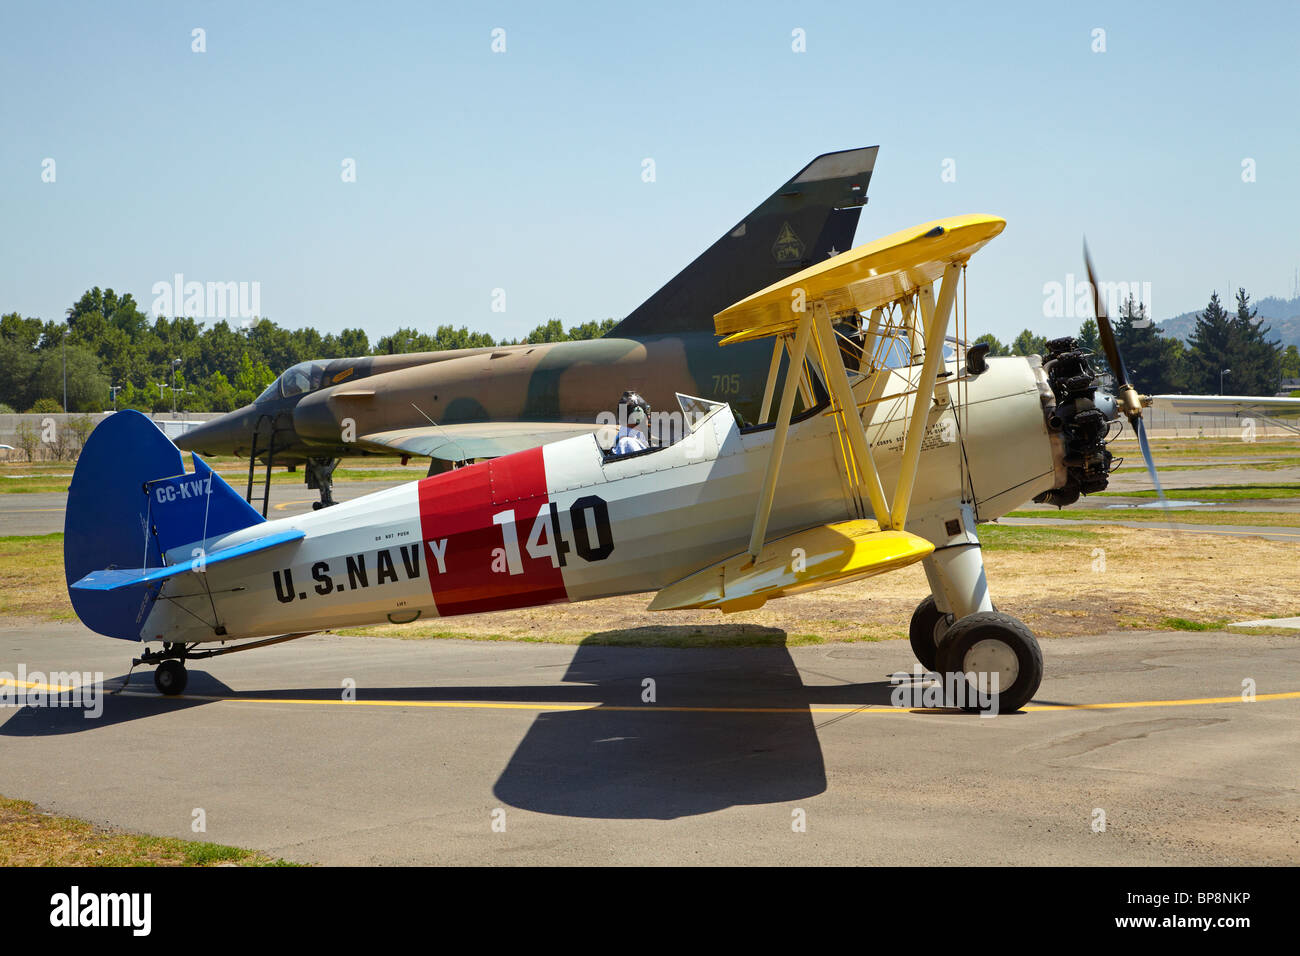 Boeing A75N1 Stearman Biplane, and MIG Fighter Jet, Vitacura Airfield, Santiago, Chile, South America - Stock Image